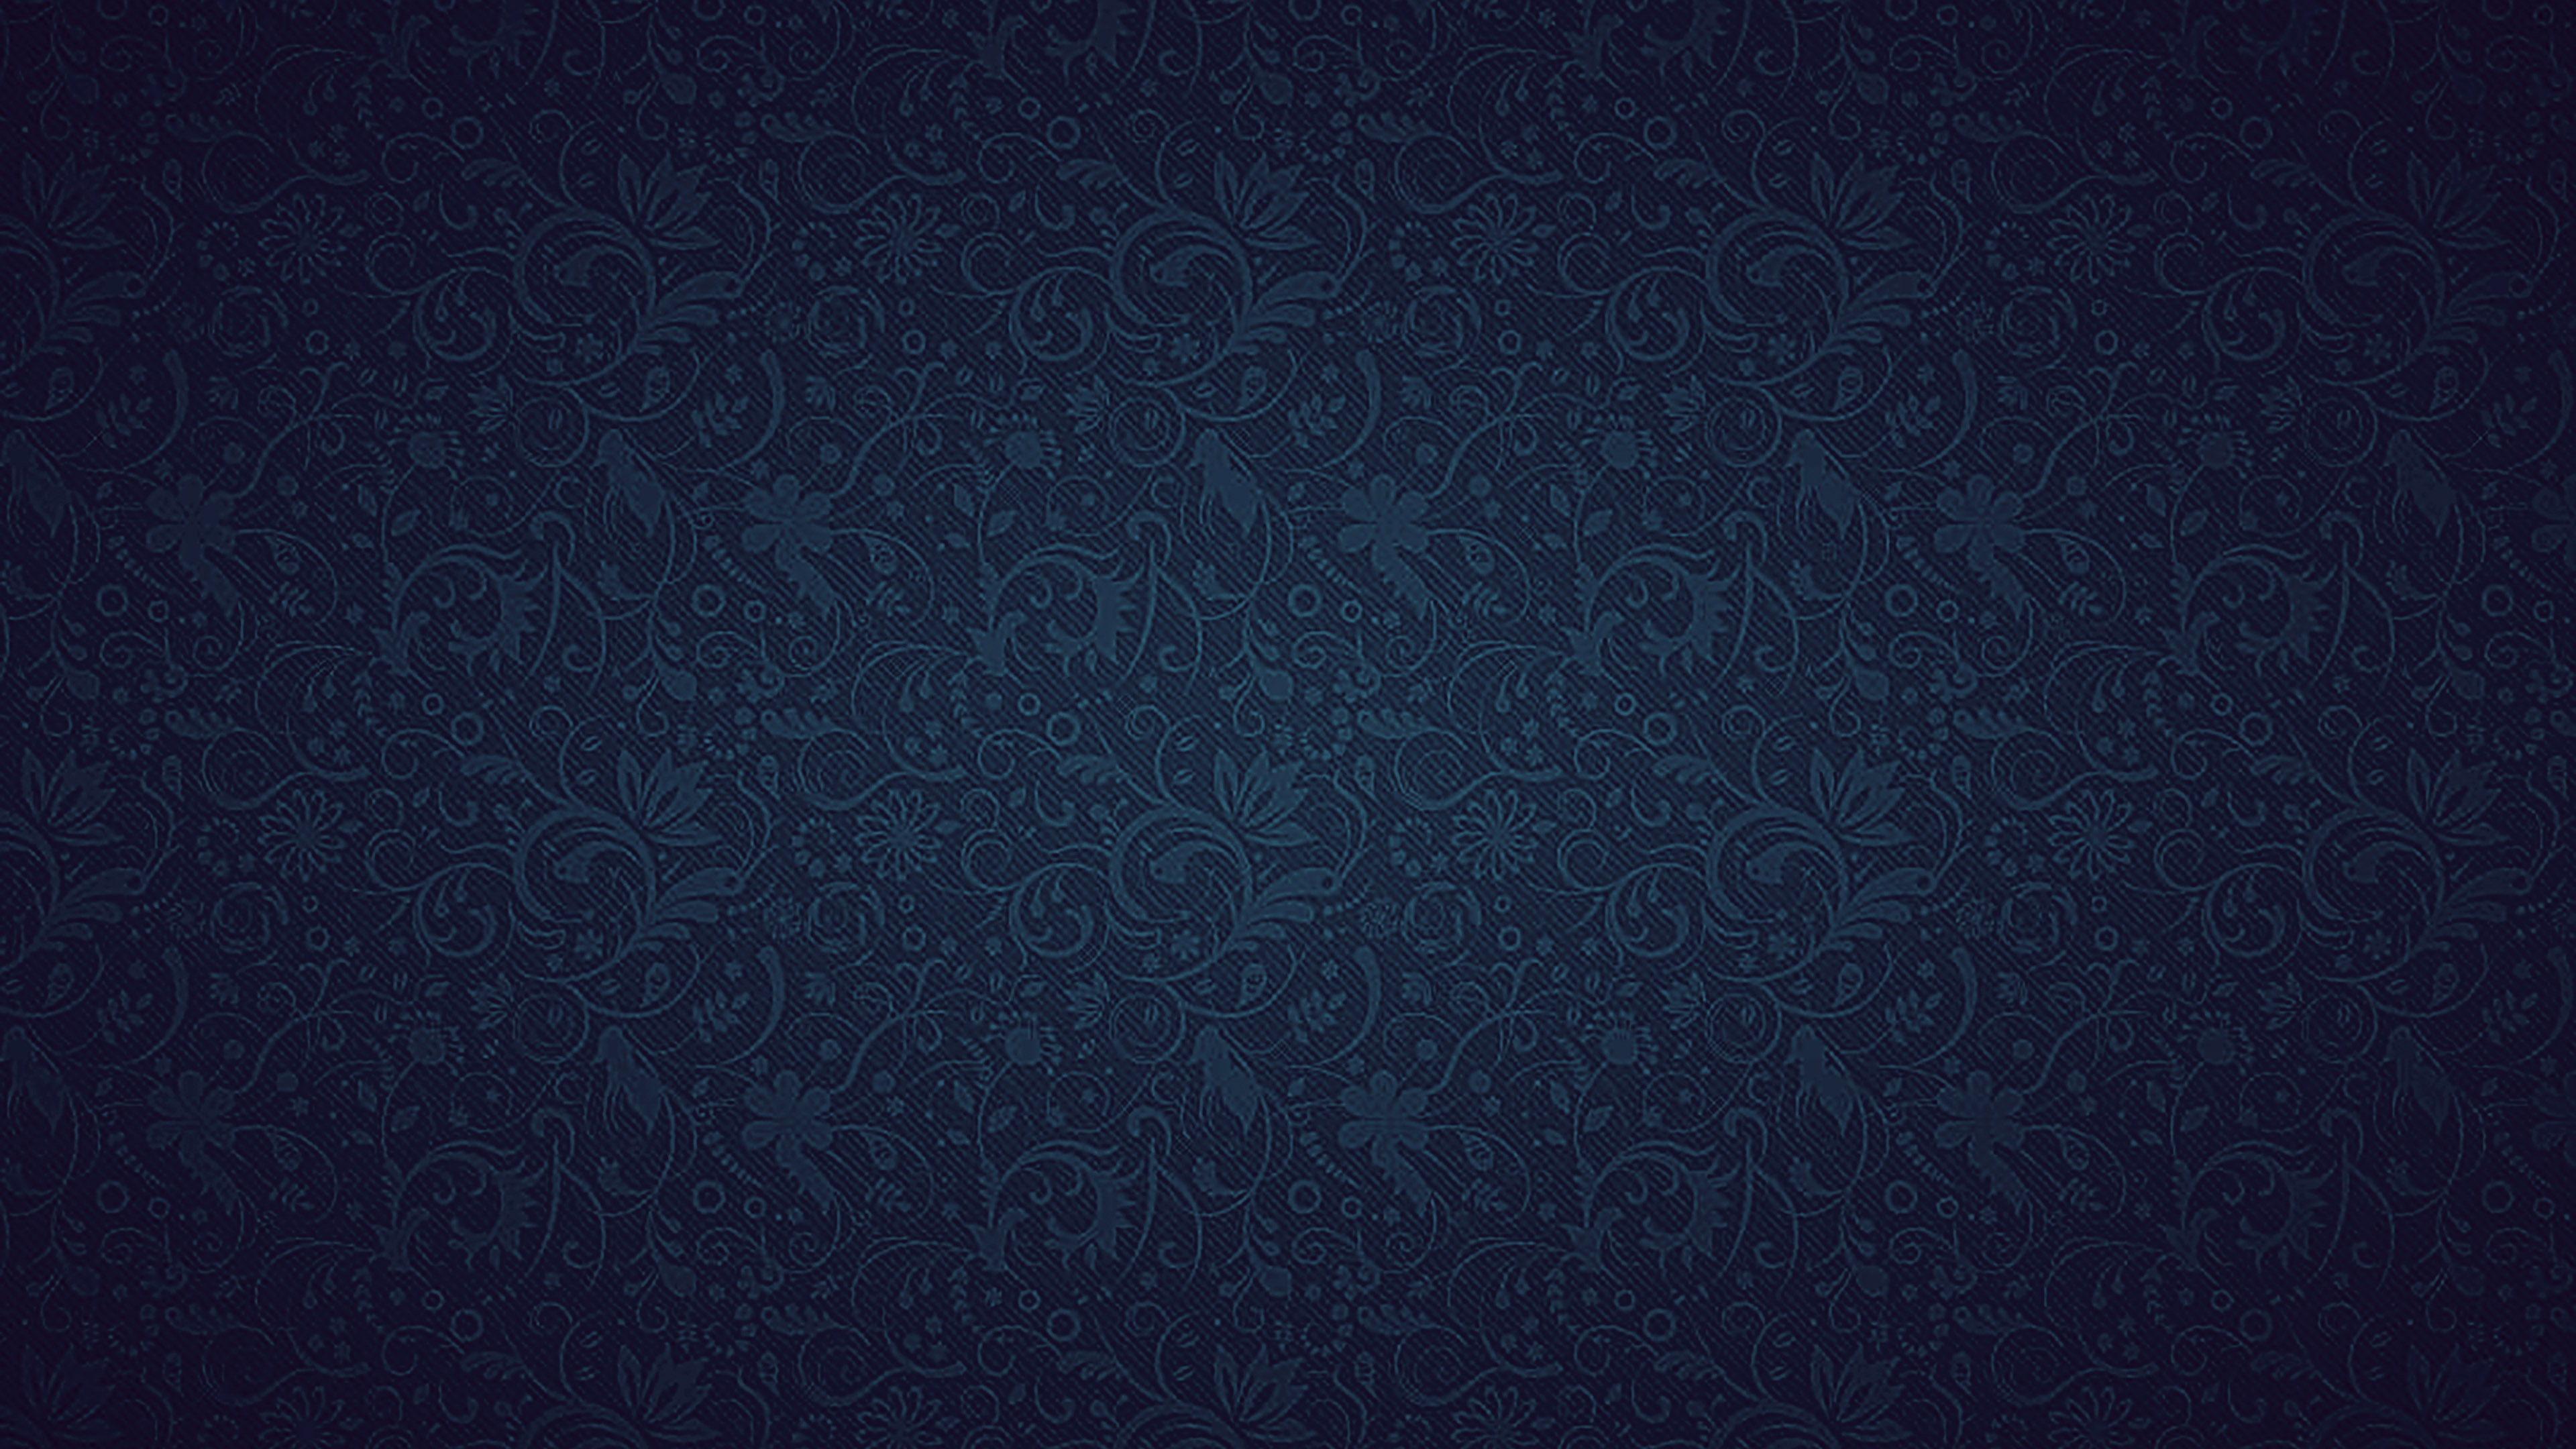 vf81-dark-blue-ornament-texture-pattern - Papers.co